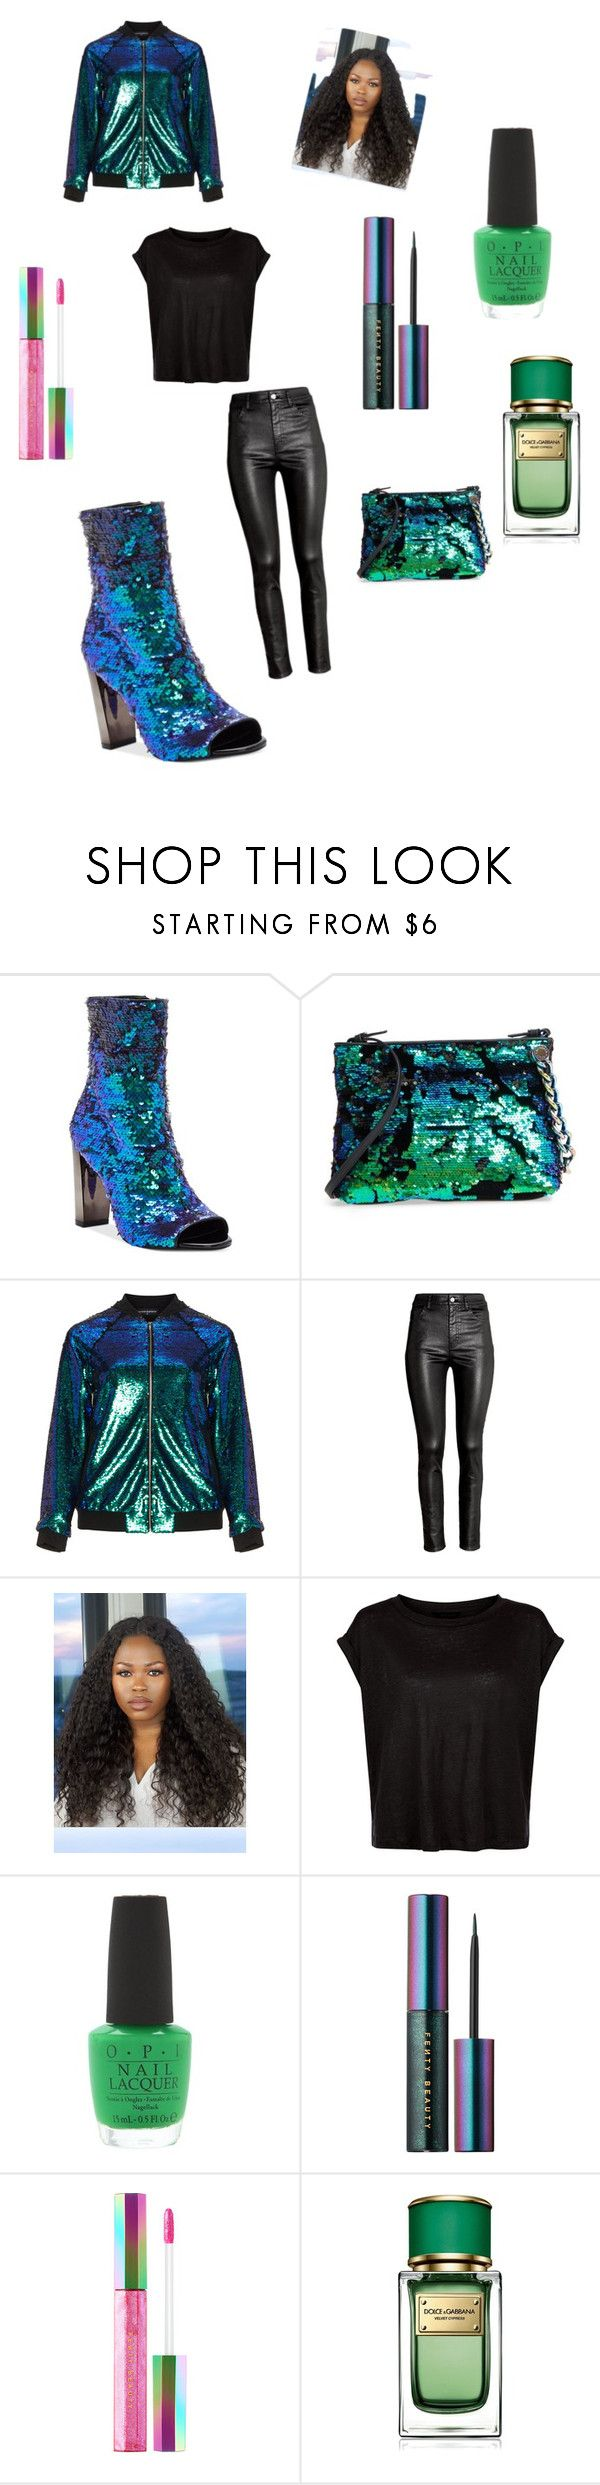 """Trina"" by whitmo on Polyvore featuring Jessica Simpson, Kendall + Kylie, Manon Baptiste, H&M, OPI, Puma, Dolce&Gabbana and plus size clothing"